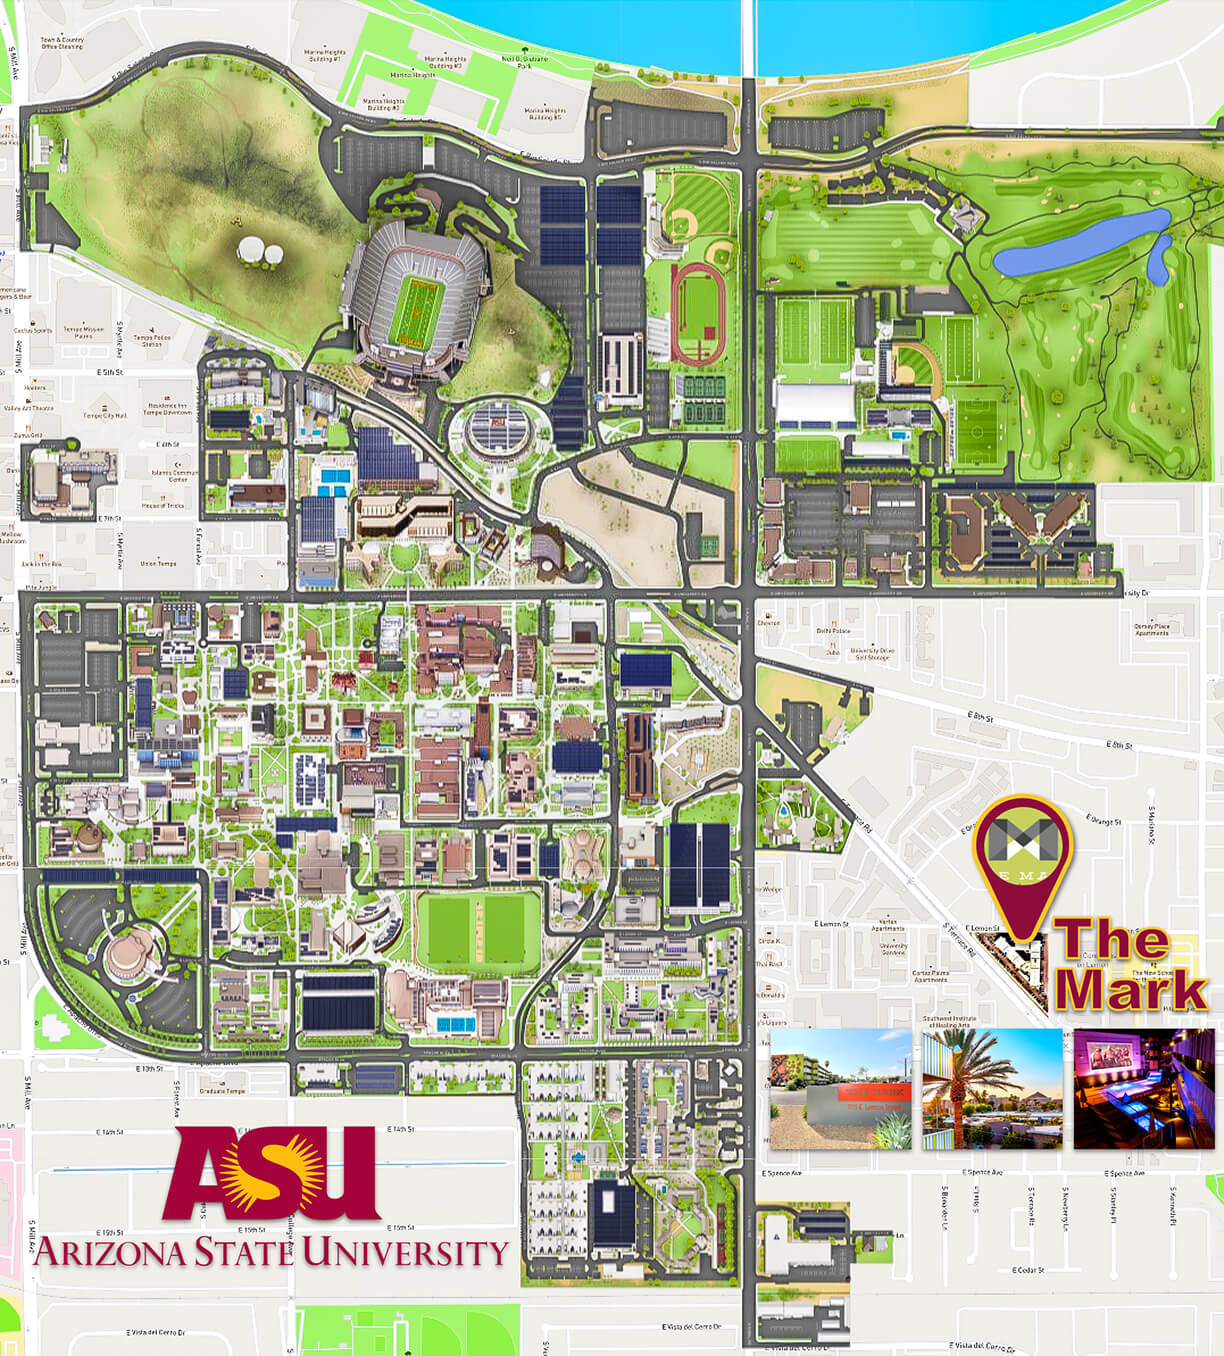 ASU Off-Campus Apartments in Tempe-AZ